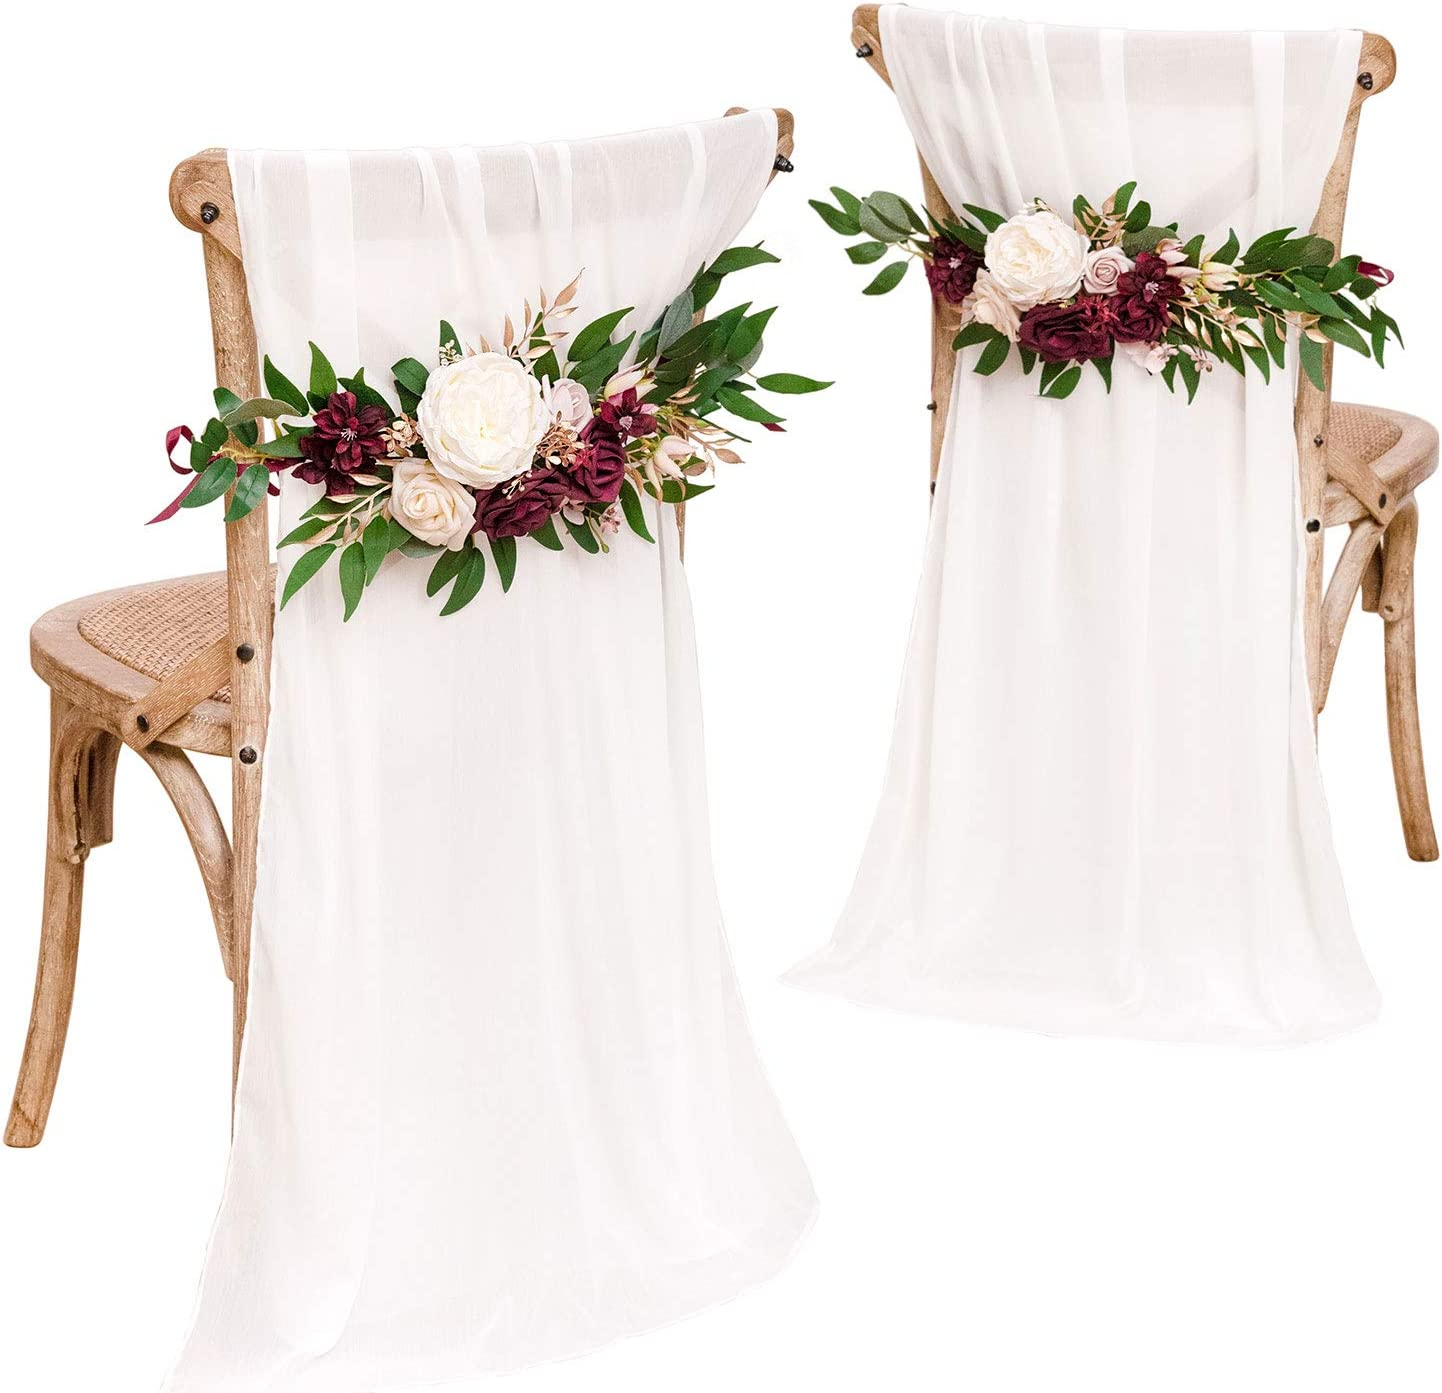 Ling's moment Set of 2 Rustic Wedding Chair Decoration for Bride Groom with Sashes, Marsala Flower Swags for Arch,Aisle Pew Decoratons for Wedding Ceremony